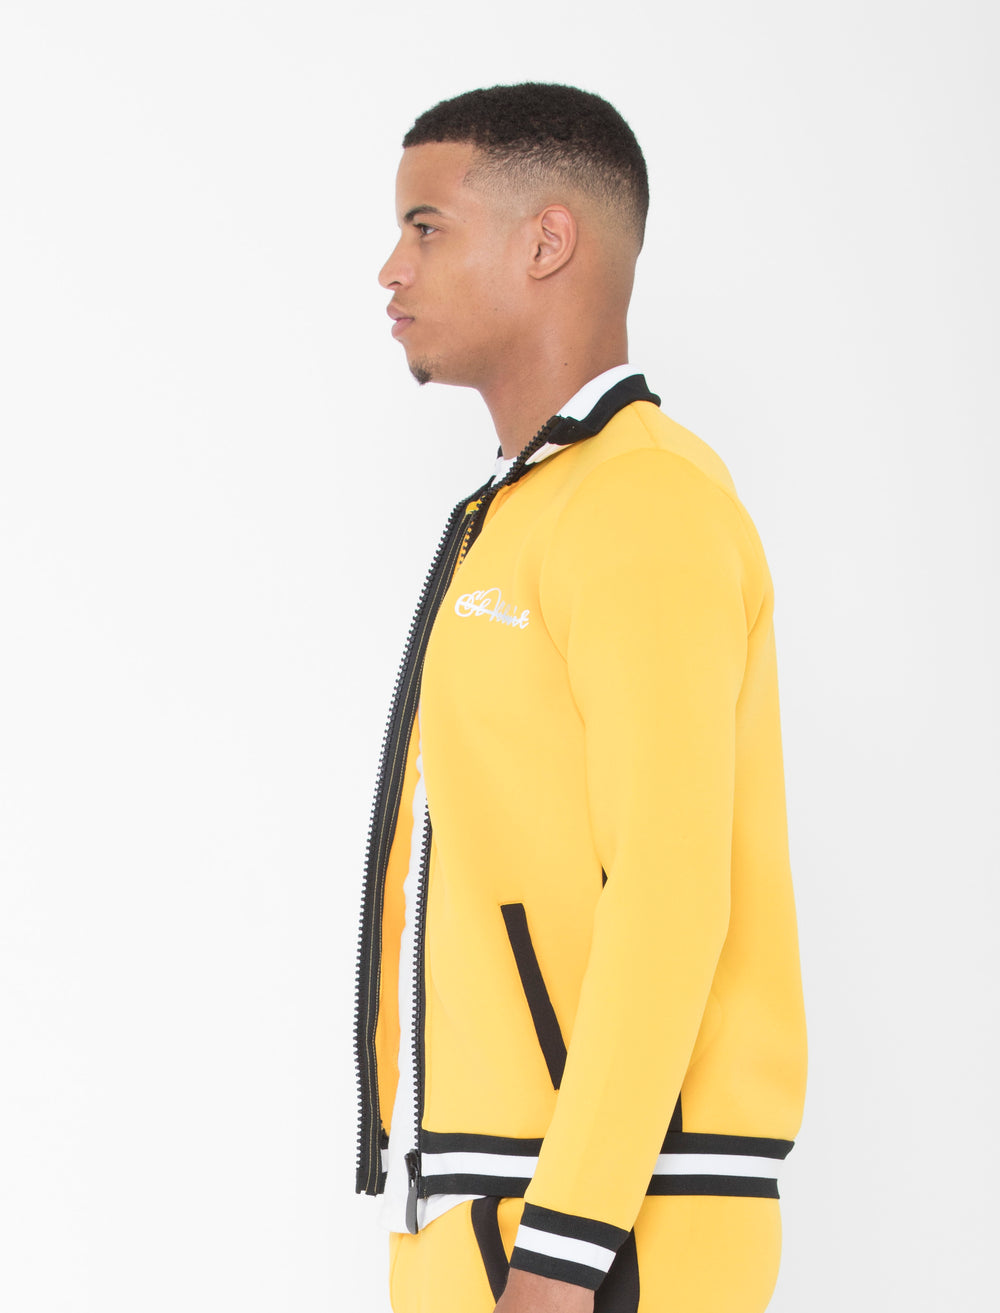 Collar Sweat SP Yellow Neoprene Top